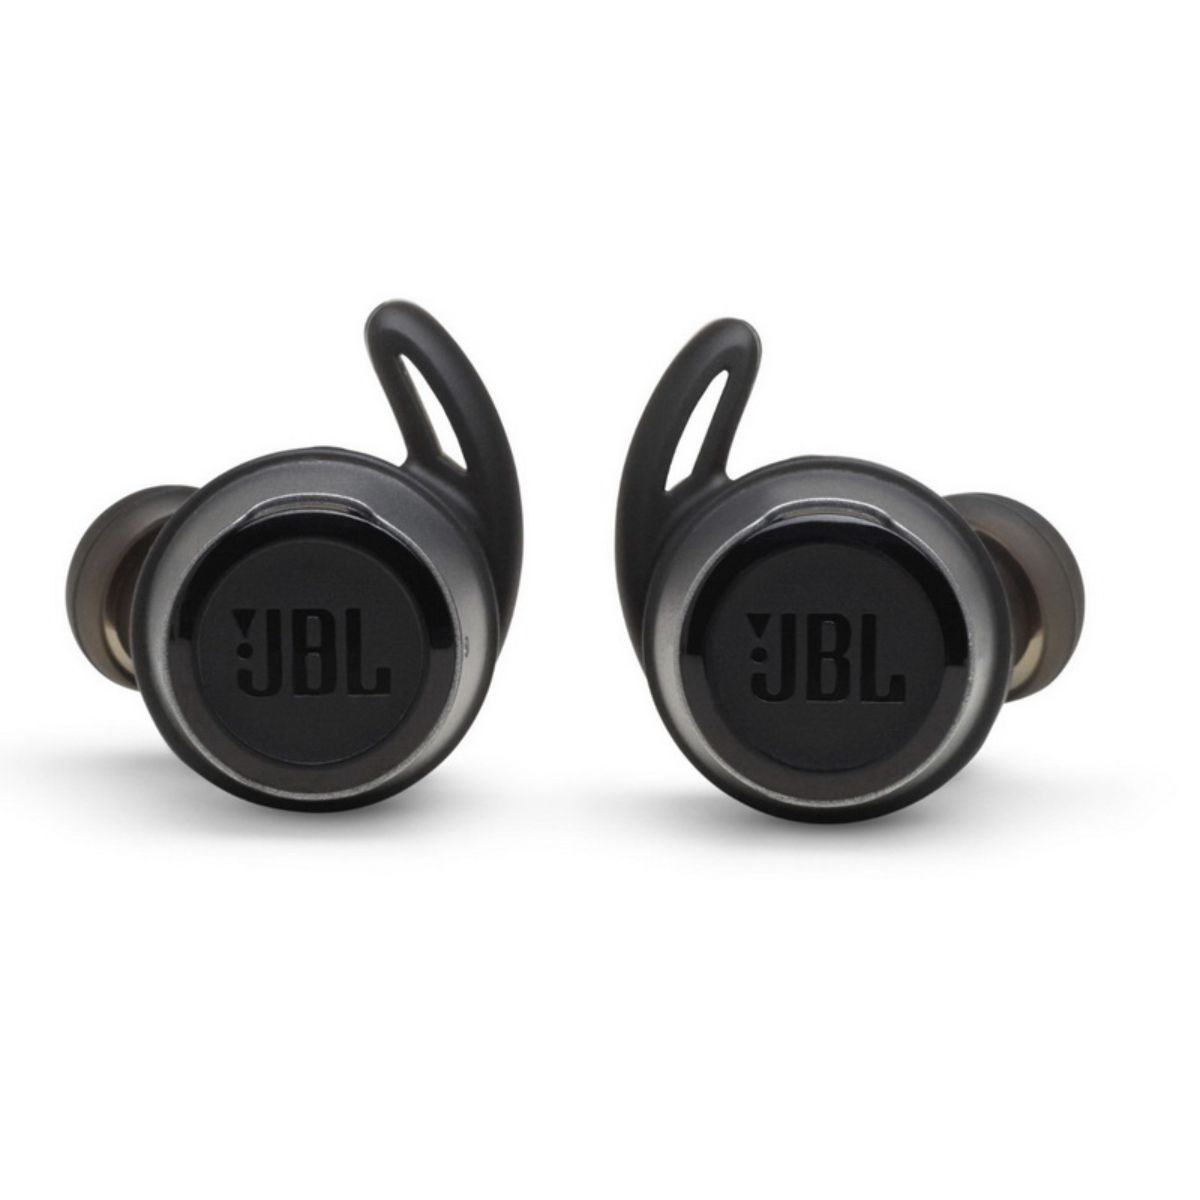 In-Ear Headphone (Black) JBLREFFLOWBLK